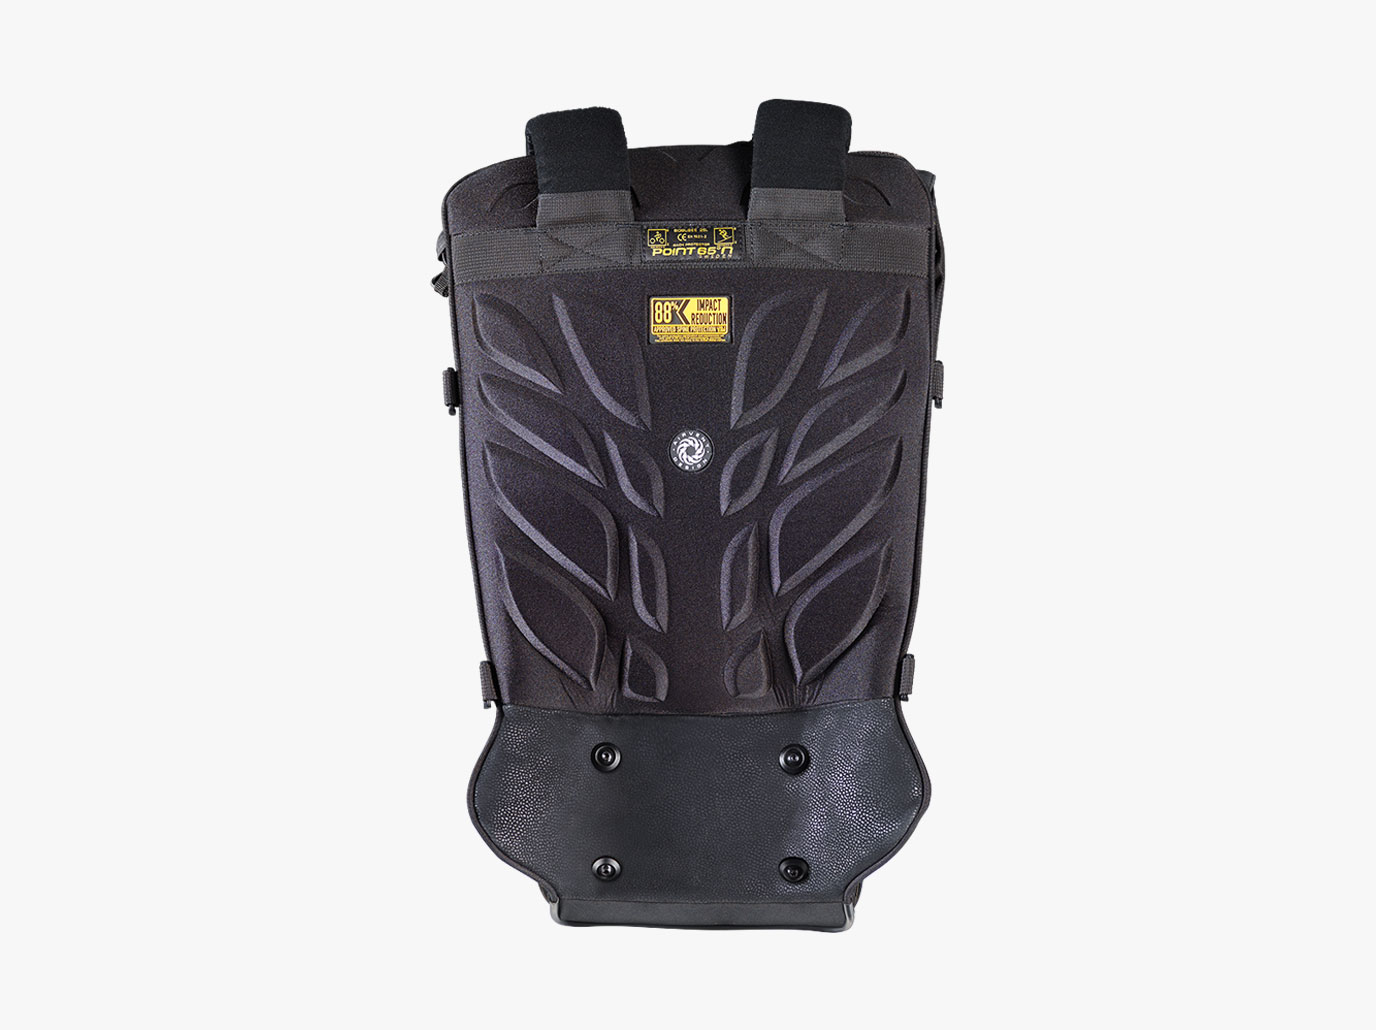 vystavni-kus-boblbee-25l-gtx-diablo-red-point65